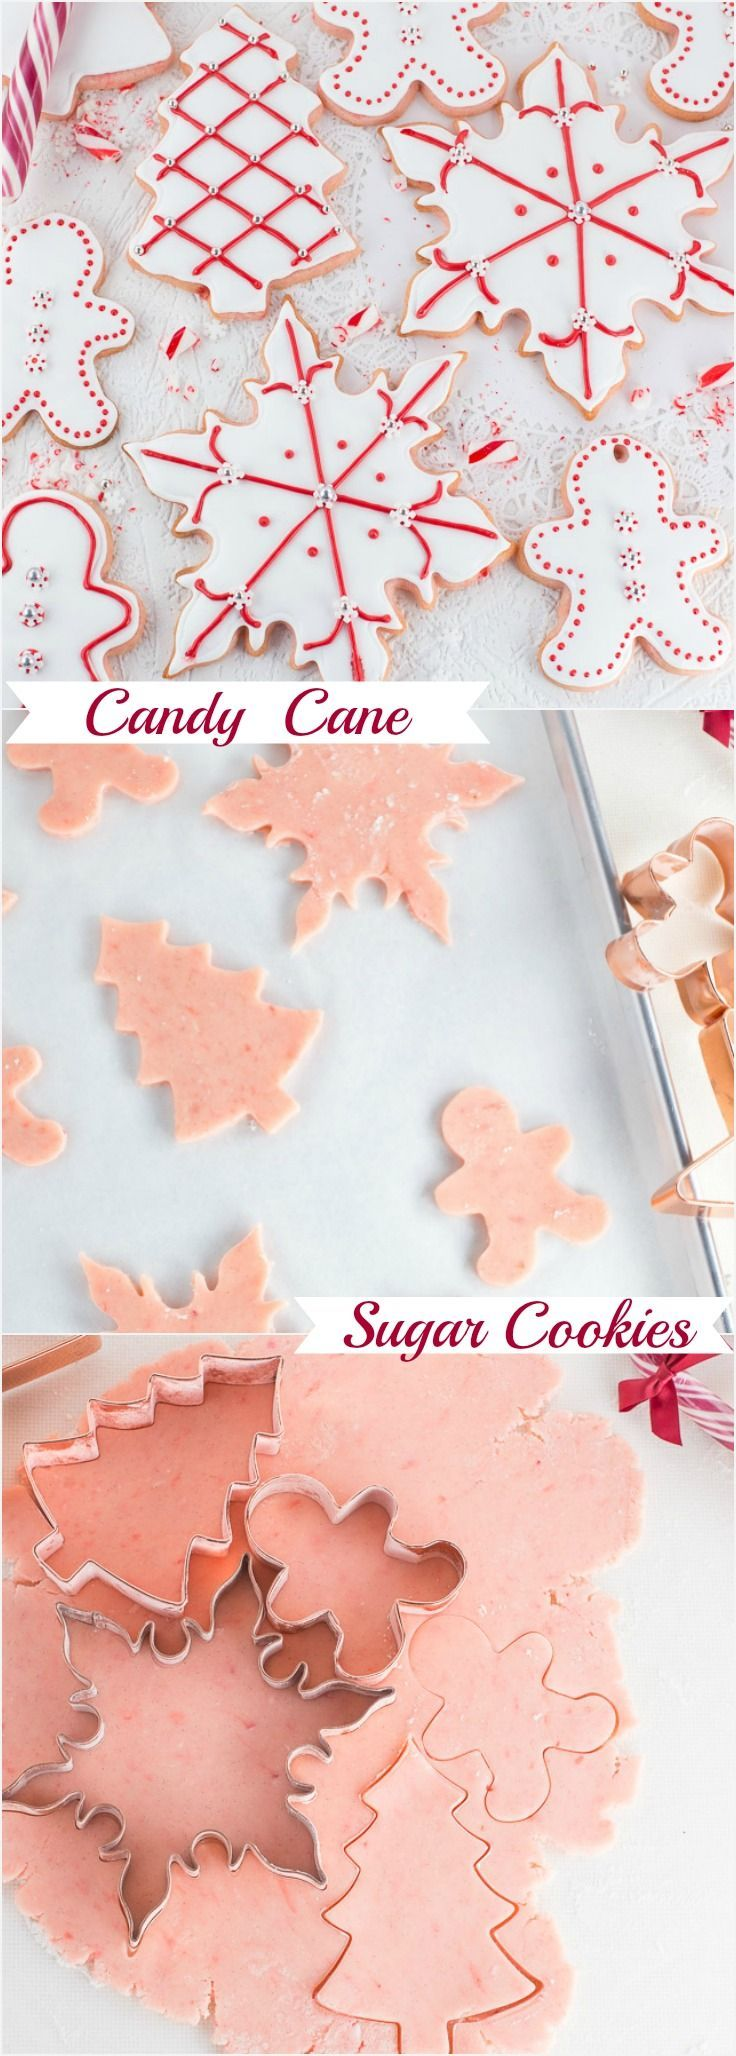 Amazing tasting Candy Cane Sugar Cookies! The perfect recipe for making decorative cut out cookies. The best sugar cookies I have ever made with delicious candy cane flavour!